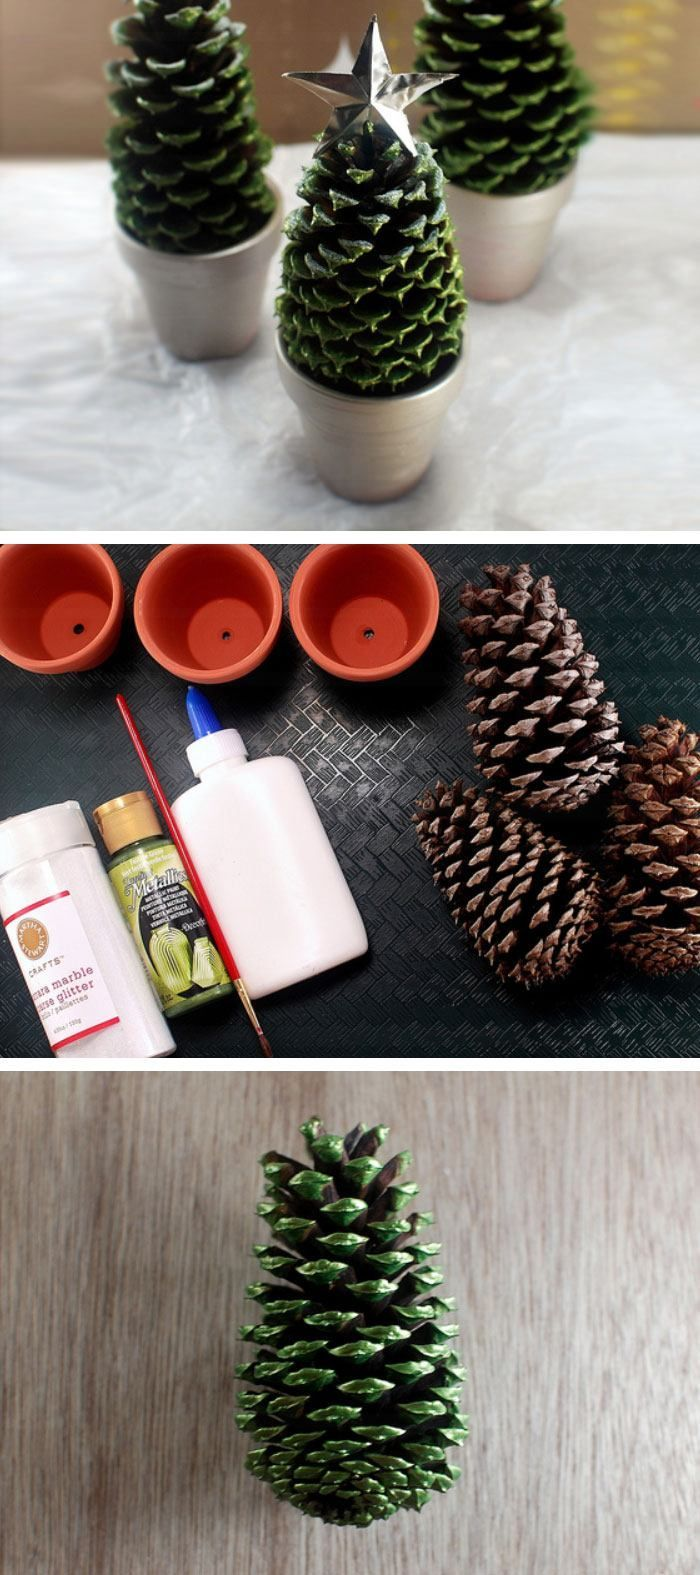 Merveilleux Diy Home Decor: 22 Budget Christmas Decor Ideas For The Home